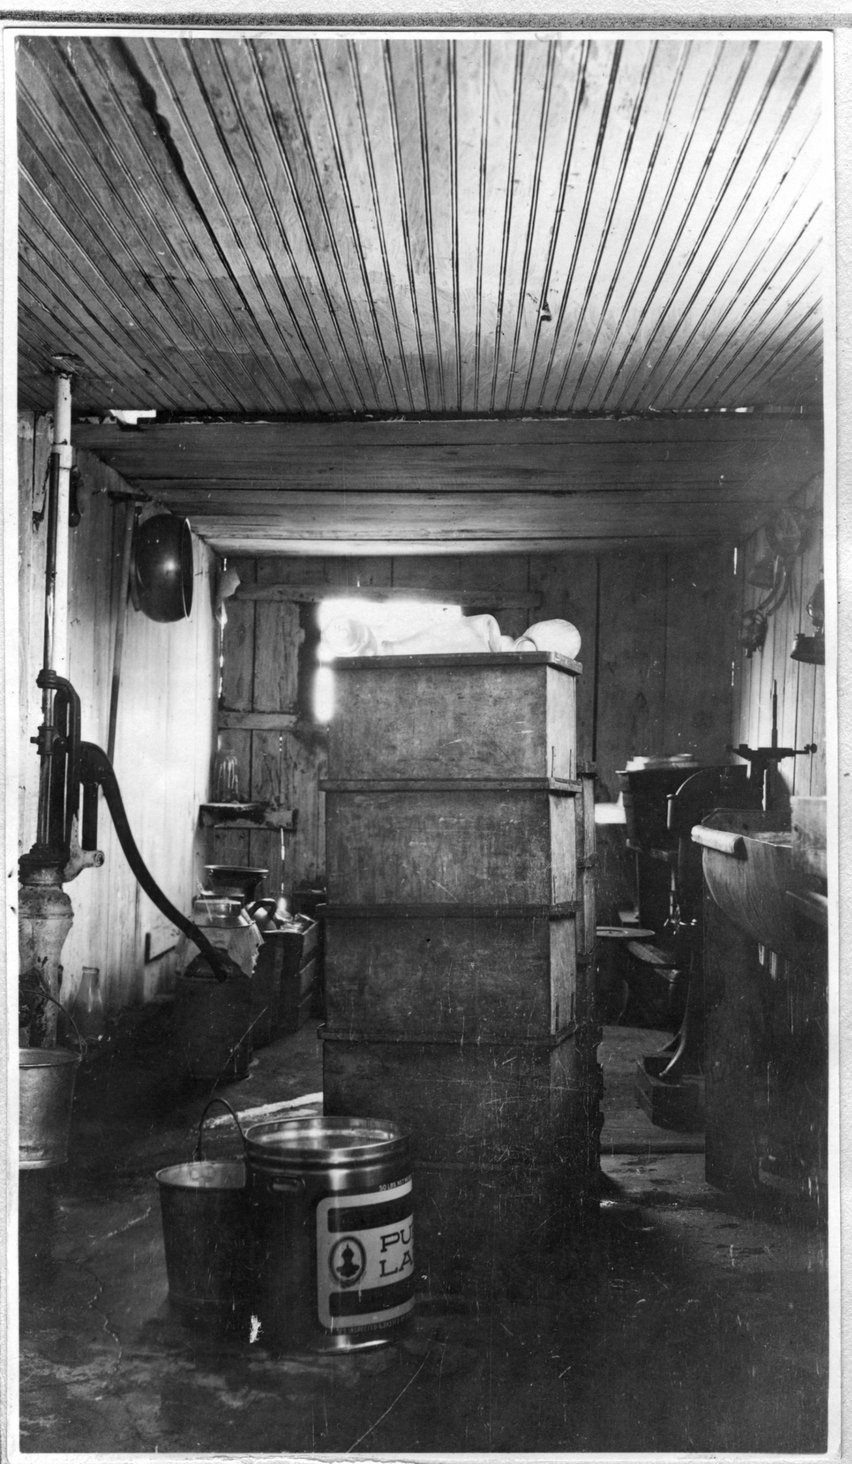 172~W. E. Norwood Milkhouse Interior Aug 1920.jpg